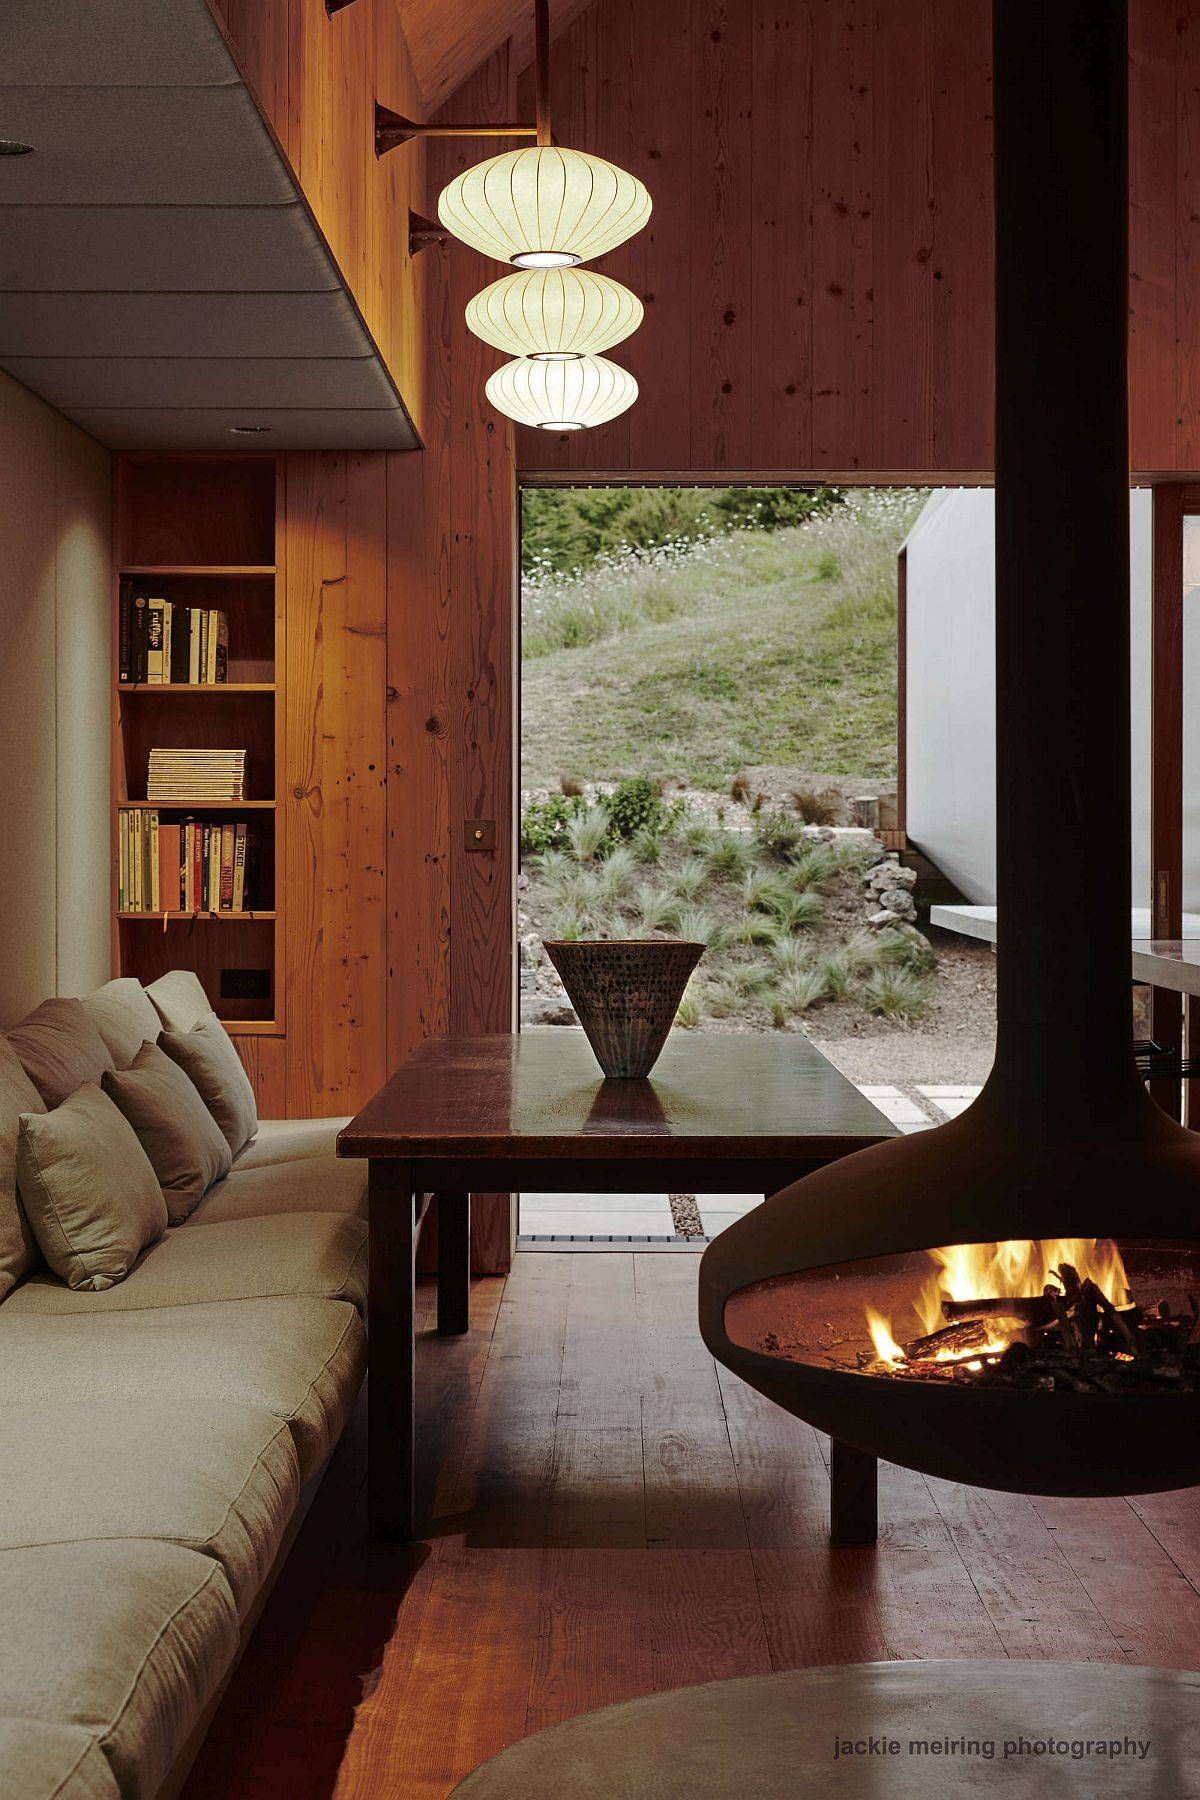 Living-room-of-the-home-in-the-corner-with-a-fabulous-fireplace-and-custom-lighting-97804